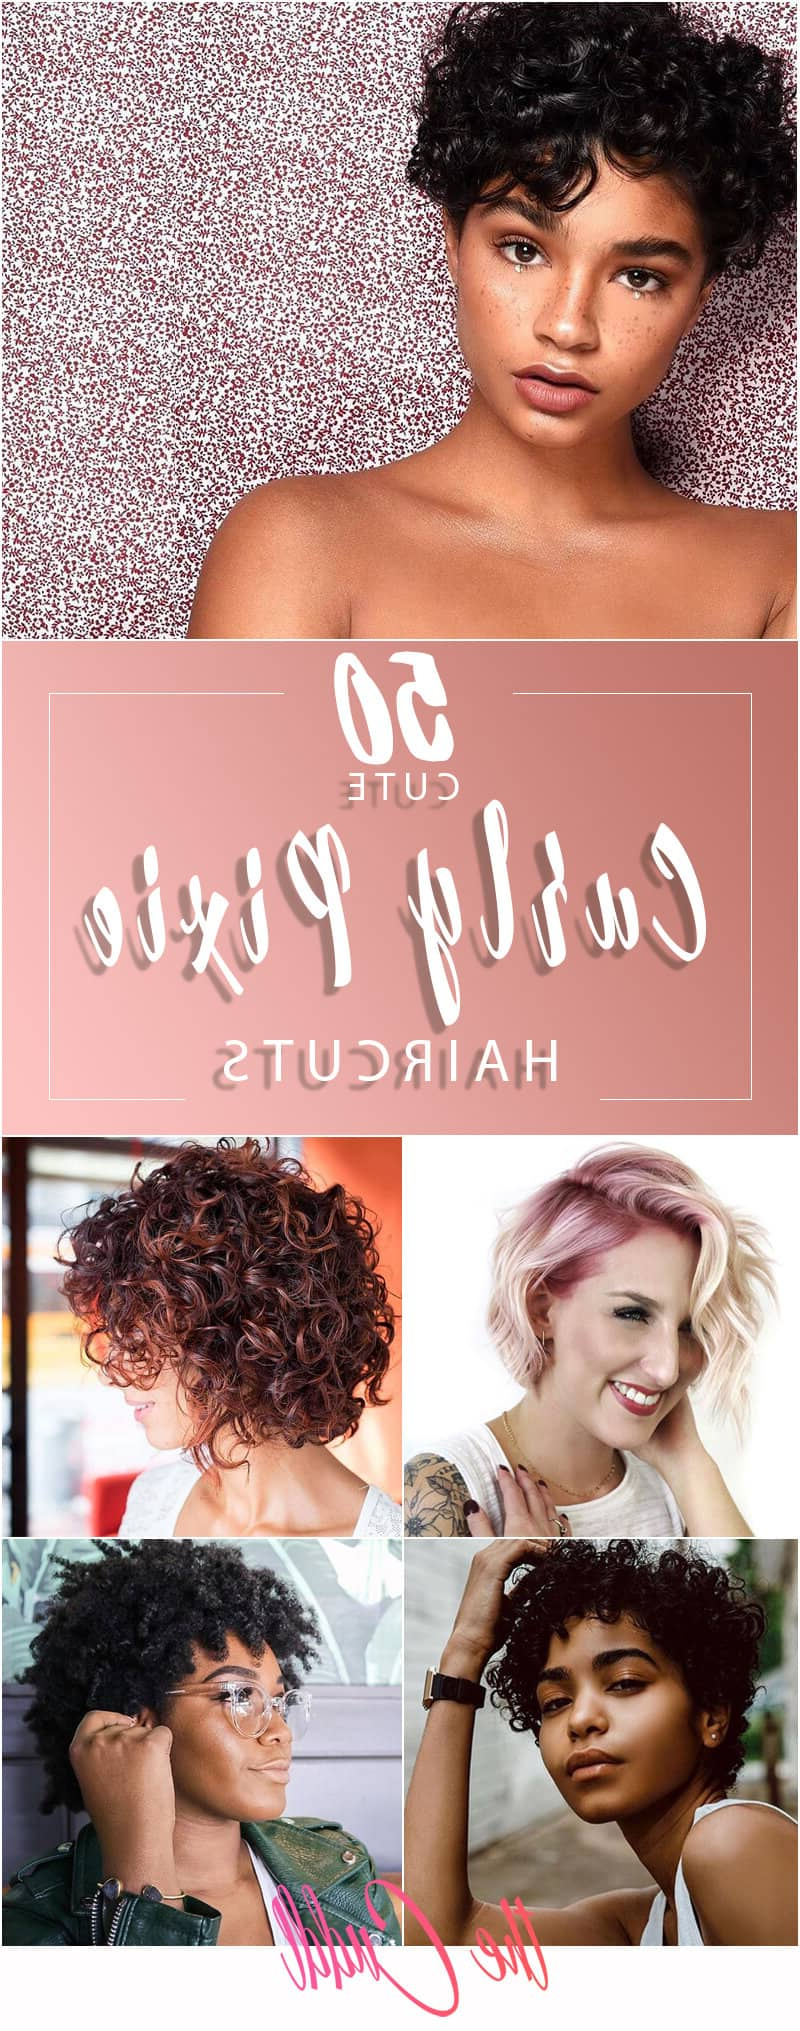 50 Bold Curly Pixie Cut Ideas To Transform Your Style In 2019 Within Pixie Haircuts With Tight Curls (View 11 of 20)